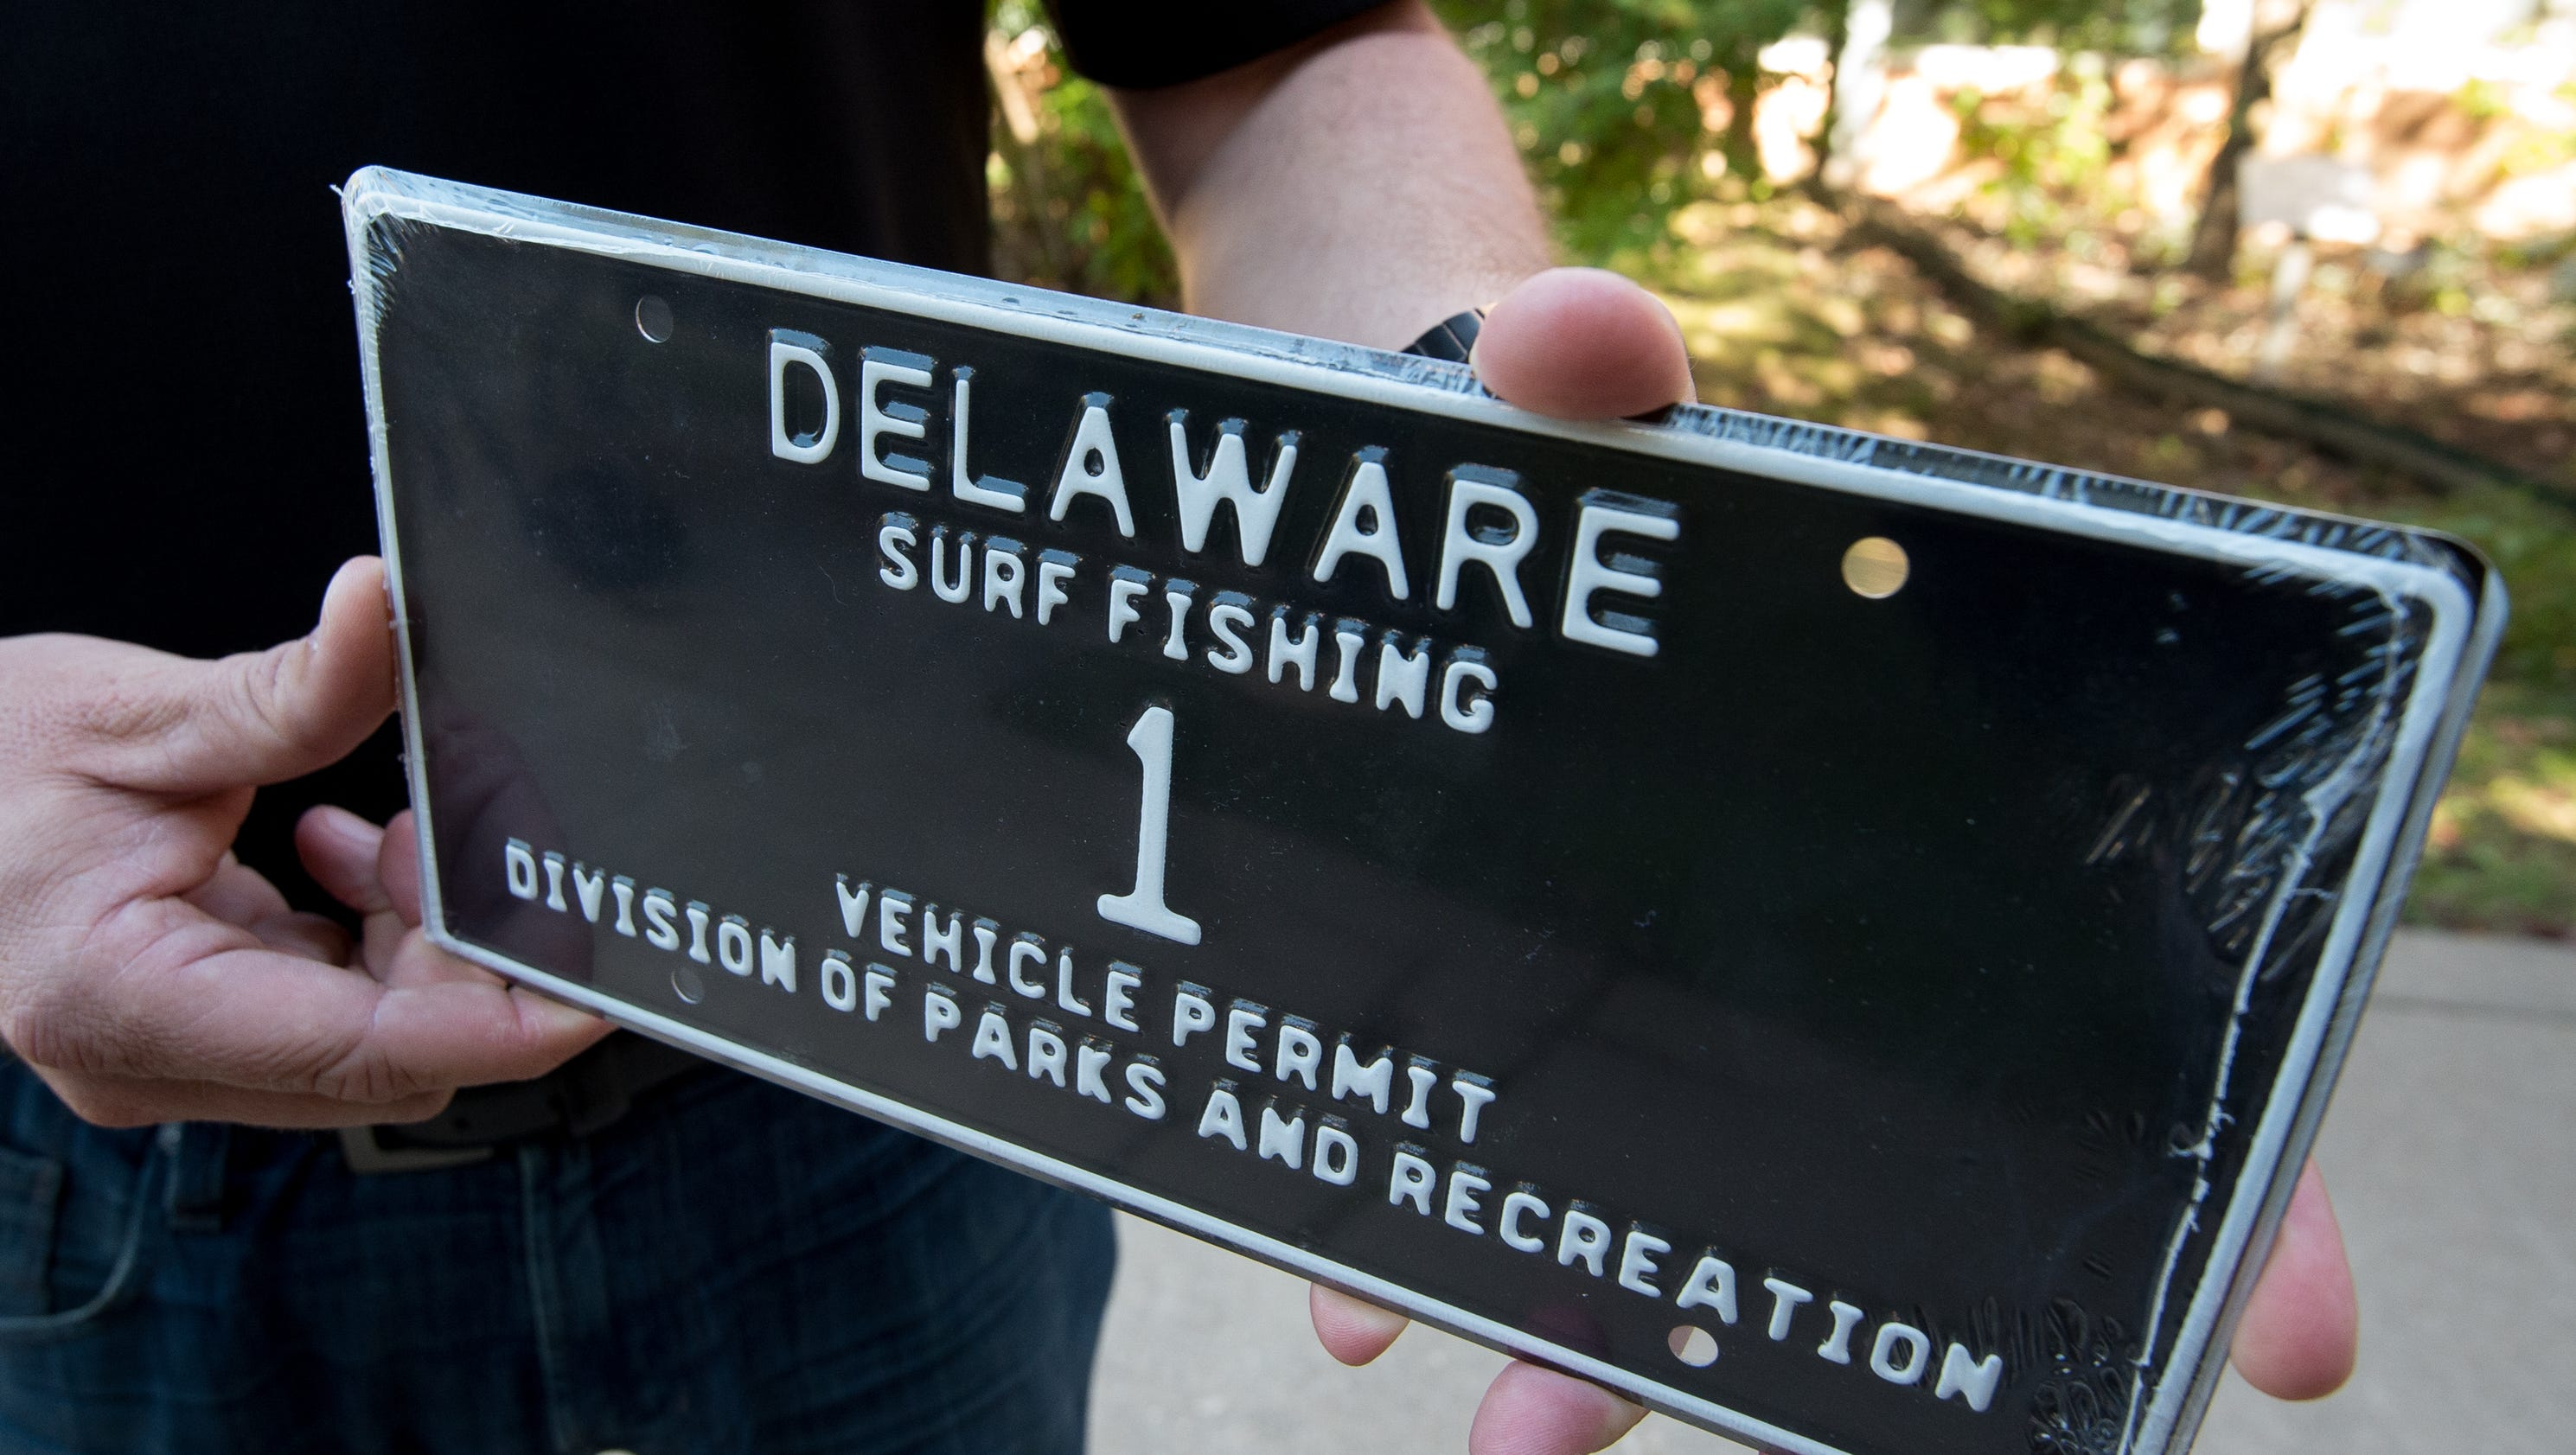 Delaware surf fishing tag no 2 sold for 20k now no 1 for Delaware surf fishing